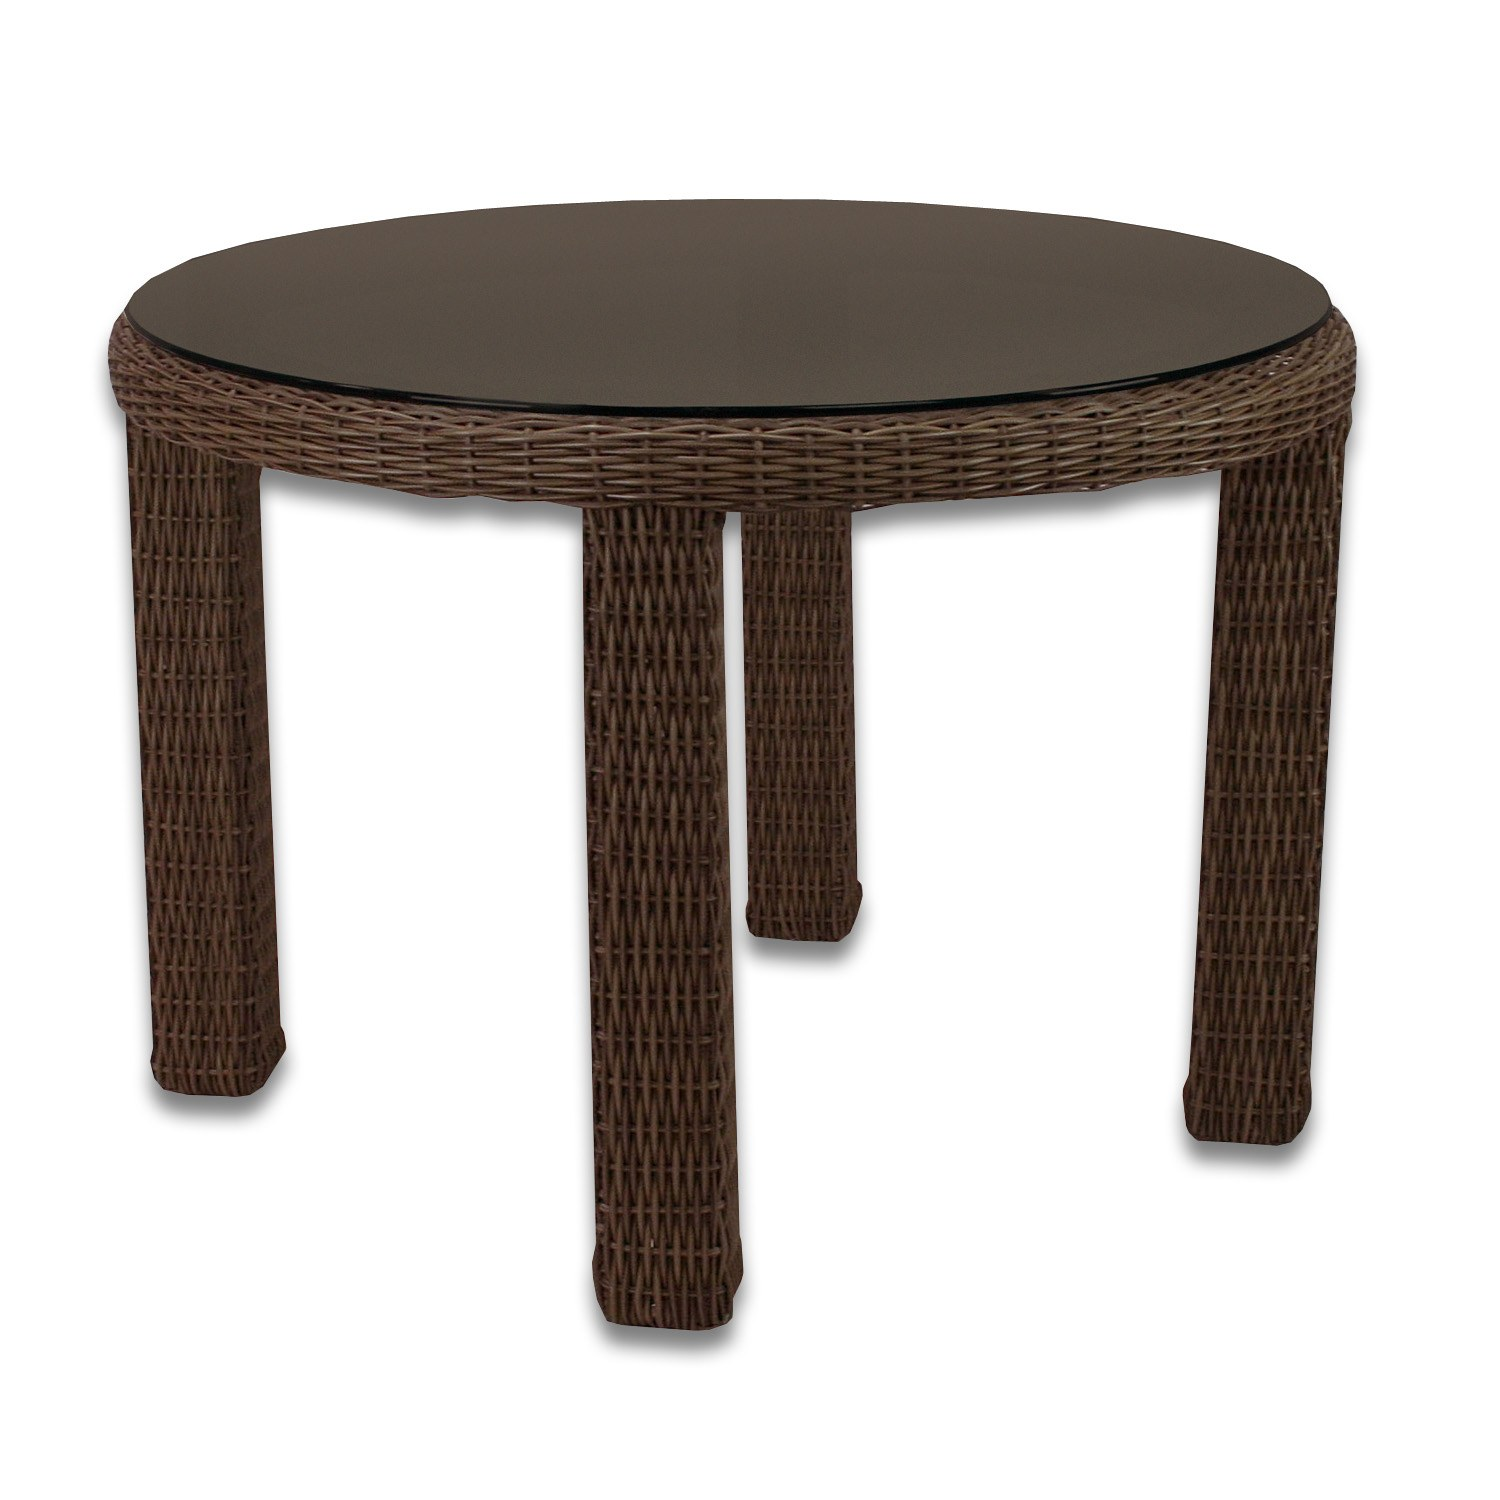 Save 32%  sc 1 st  Madison Seating & Signature Dining Table Round 42